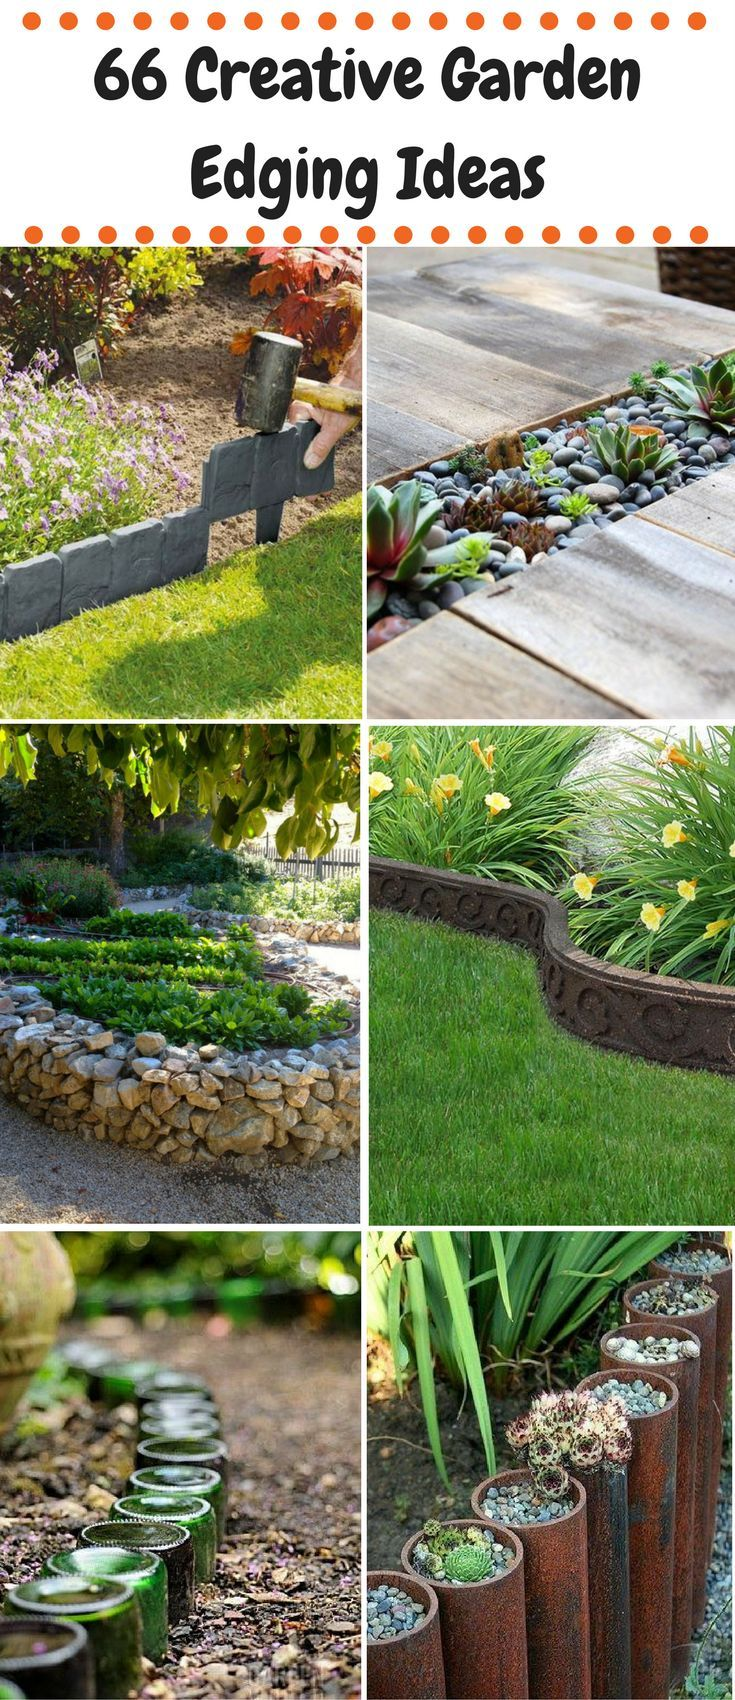 609 best Garden edging ideas images on Pinterest | Garden edging ...